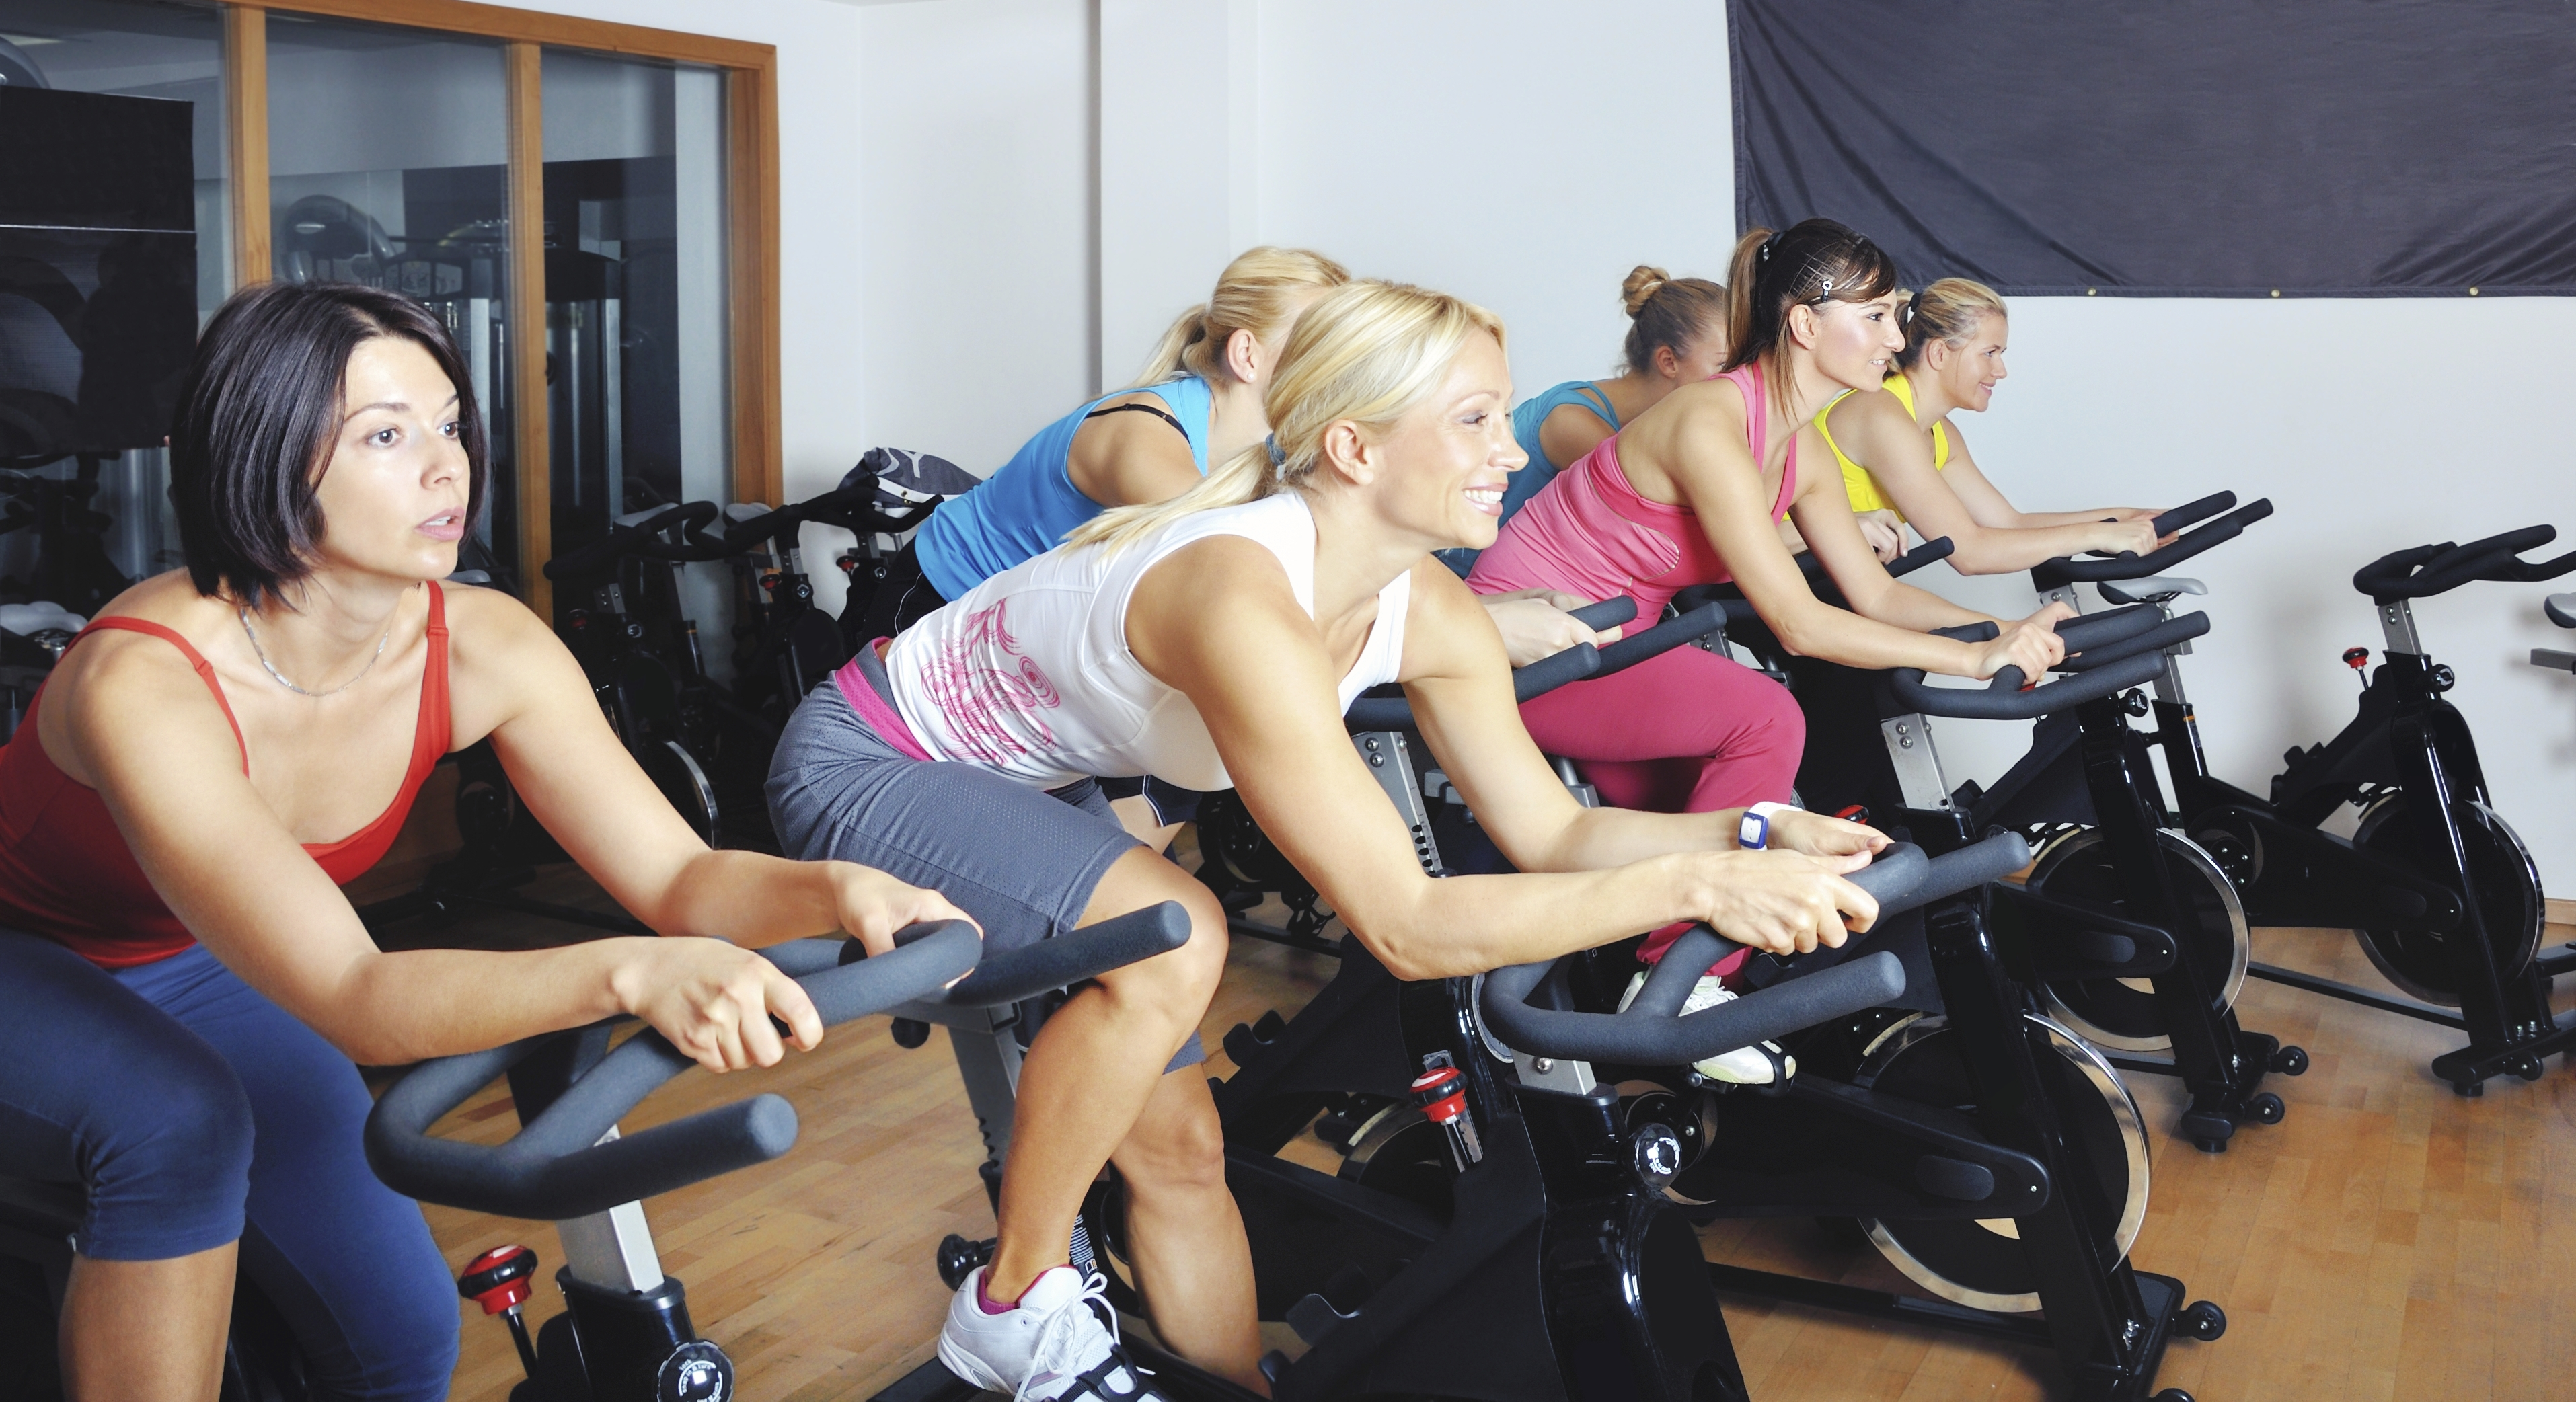 Cycling Energy After Workout Twist25 888-489-4782 Dhea Cream Healthy Benefits Support Immune System